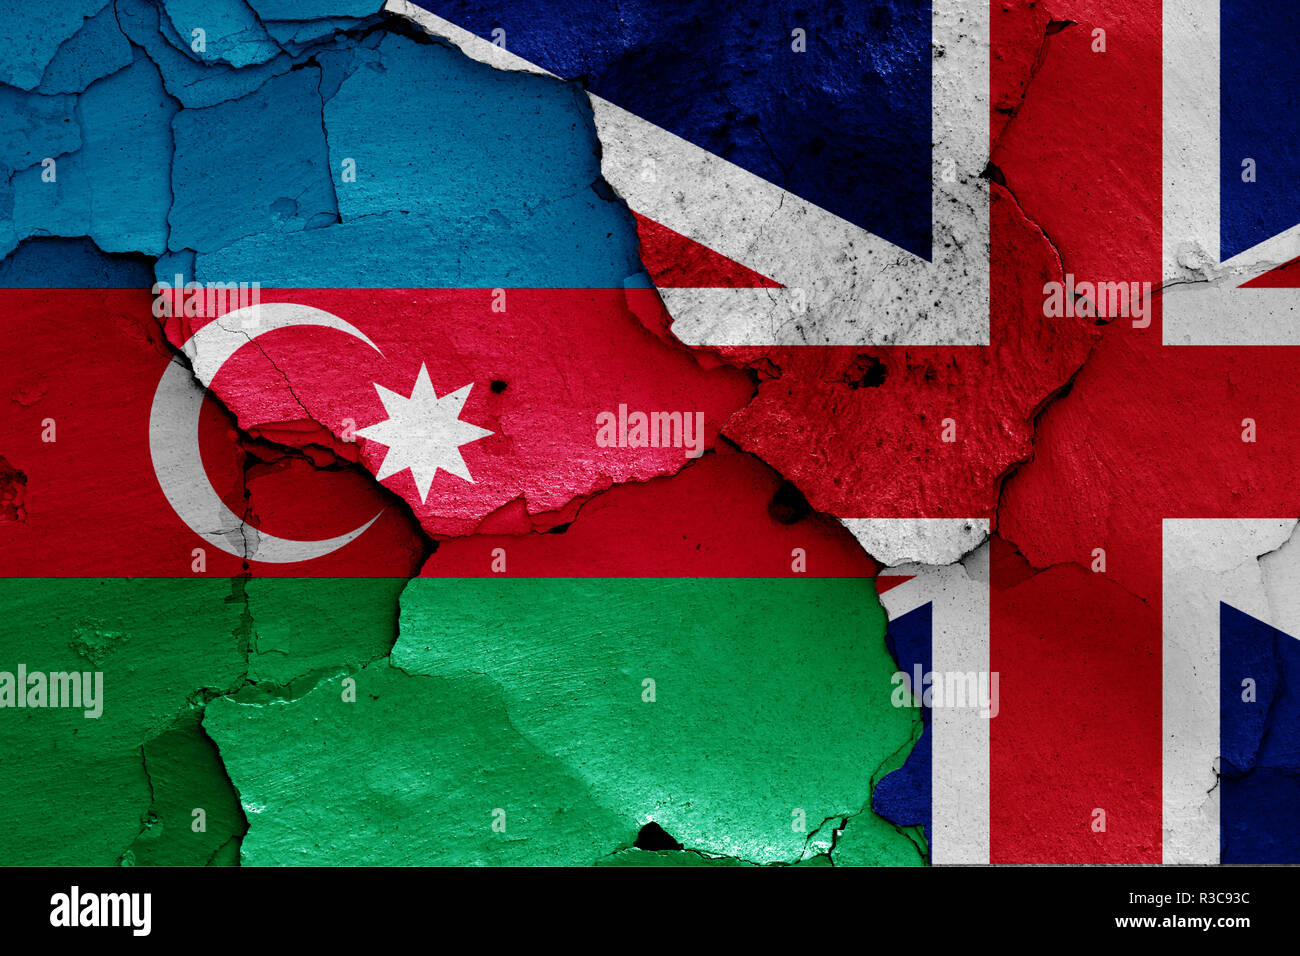 flags of Azerbaijan and UK painted on cracked wall - Stock Image